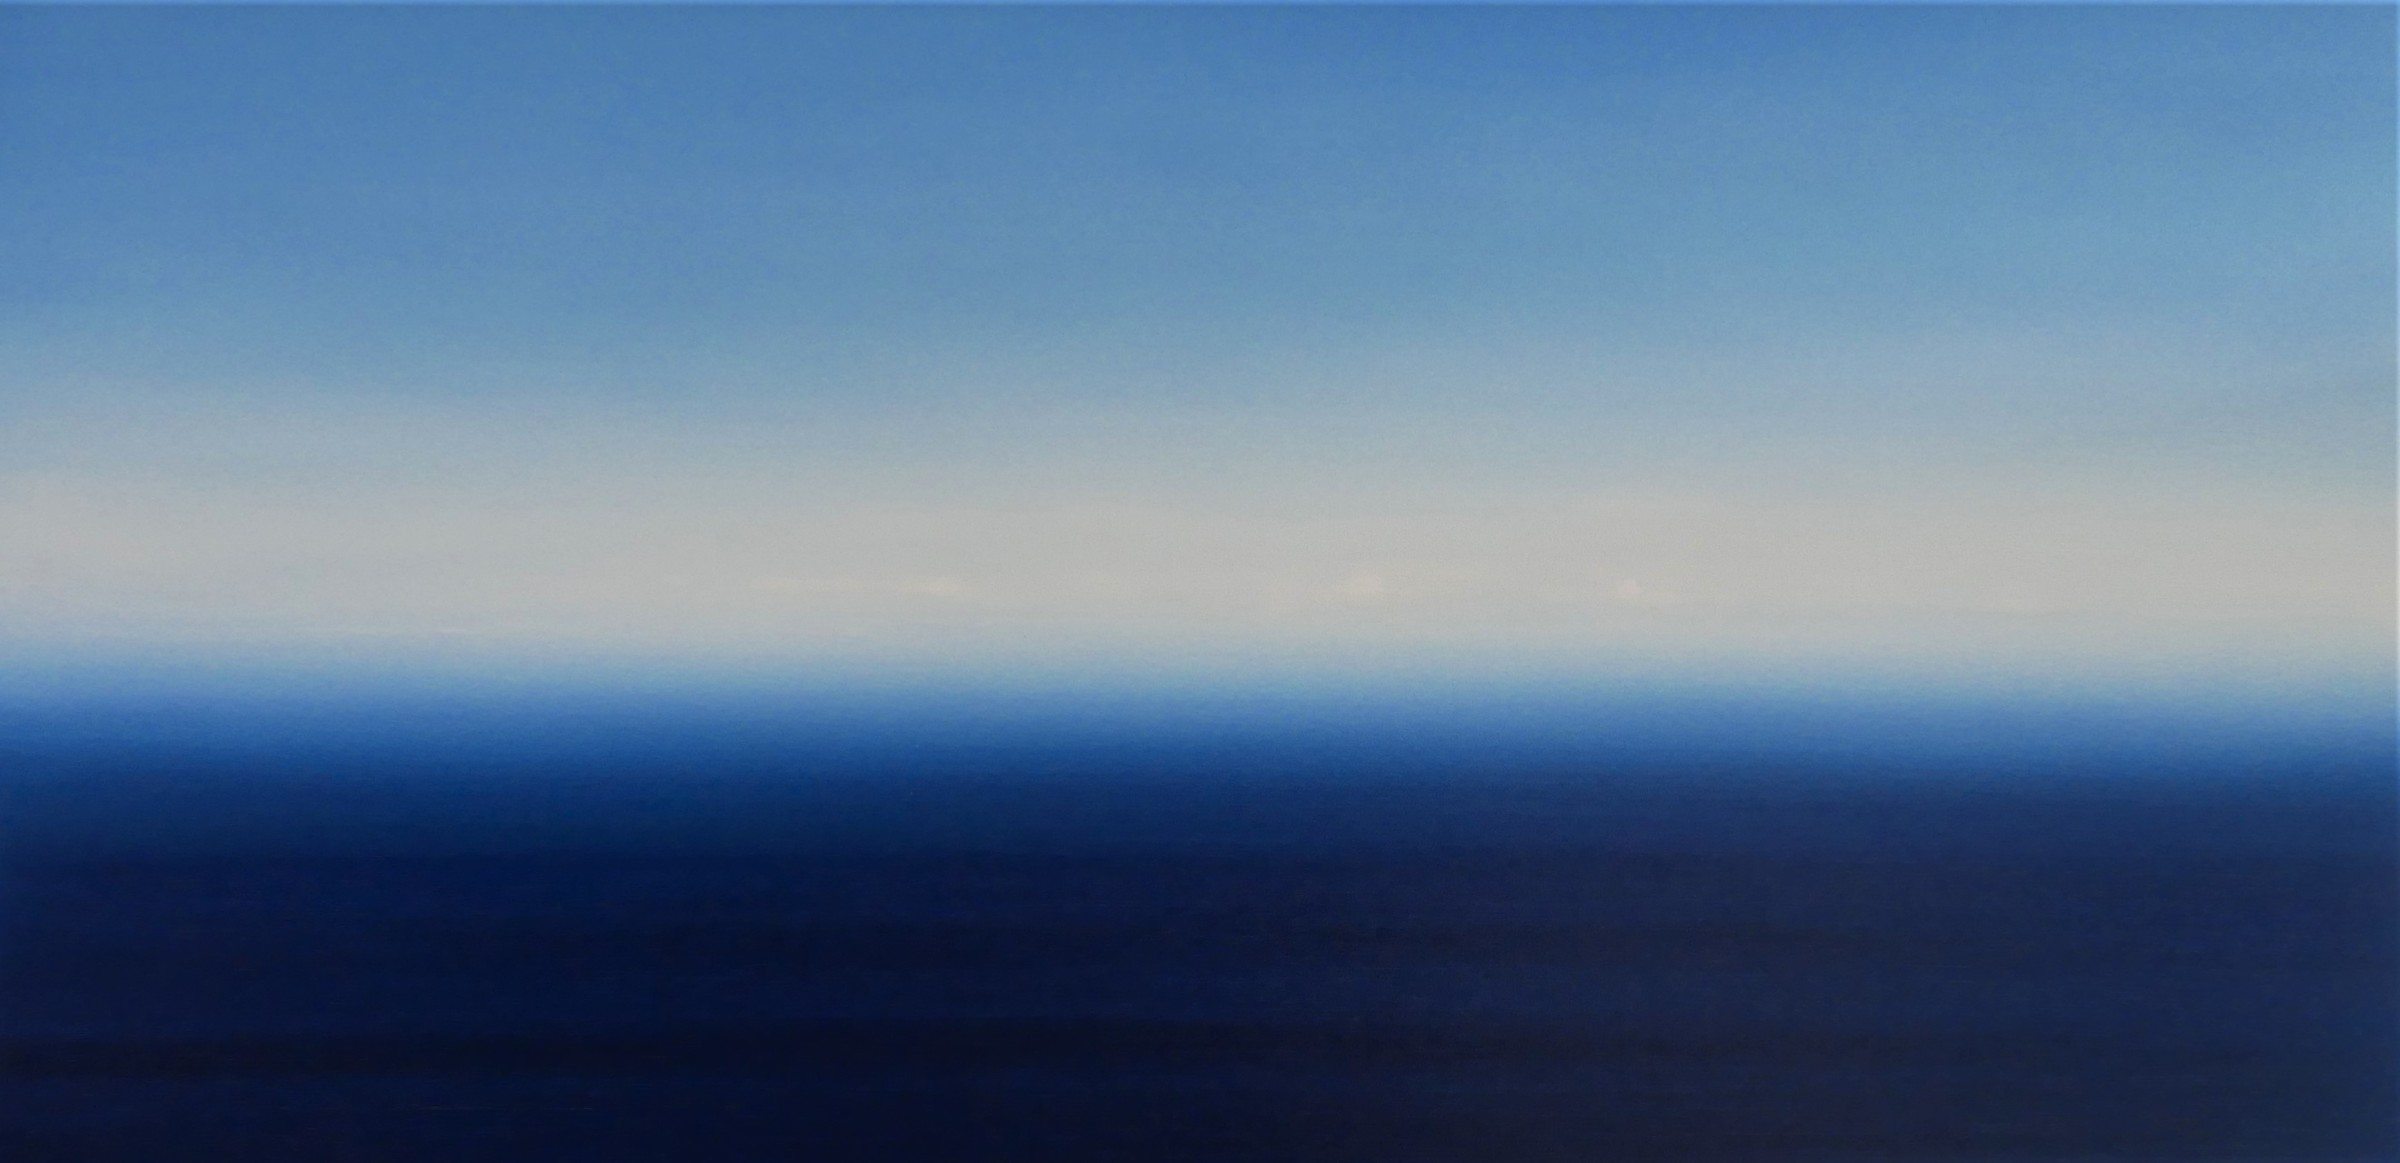 "<span class=""link fancybox-details-link""><a href=""/artists/78-martyn-perryman/works/7324-martyn-perryman-calming-skies-st-ives-2-2020/"">View Detail Page</a></span><div class=""artist""><strong>Martyn Perryman</strong></div> <div class=""title""><em>Calming Skies St Ives 2</em>, 2020</div> <div class=""medium"">Oil on Canvas</div> <div class=""dimensions"">h. 70 cm x w. 140 cm</div><div class=""price"">£1,400.00</div><div class=""copyright_line"">Own Art £120 x 10 months, 0% APR</div>"